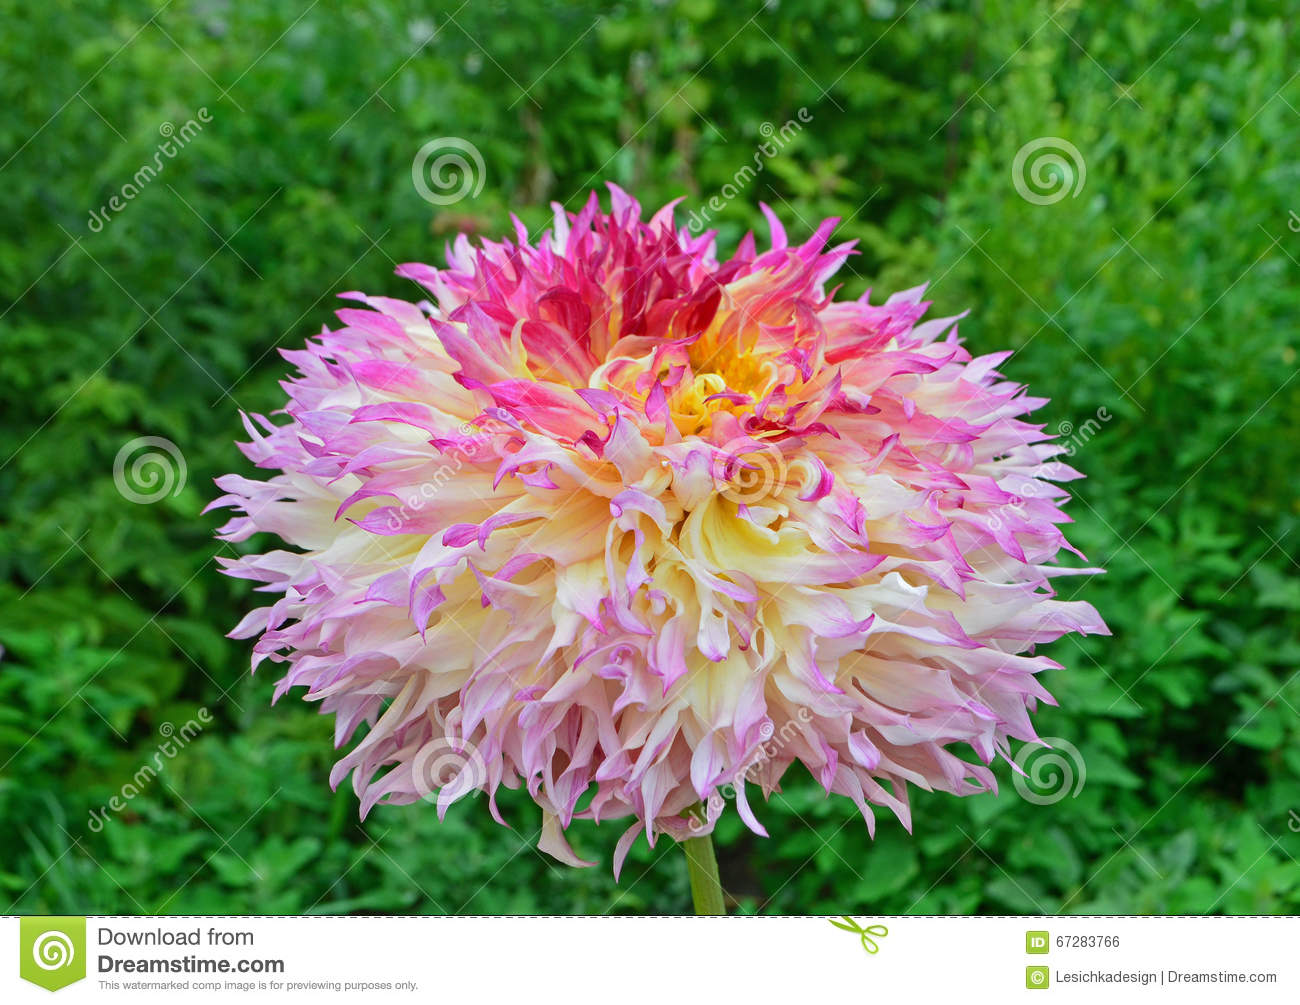 Yellow pink and orange dahlia flower in garden stock photo image download yellow pink and orange dahlia flower in garden stock photo image of izmirmasajfo